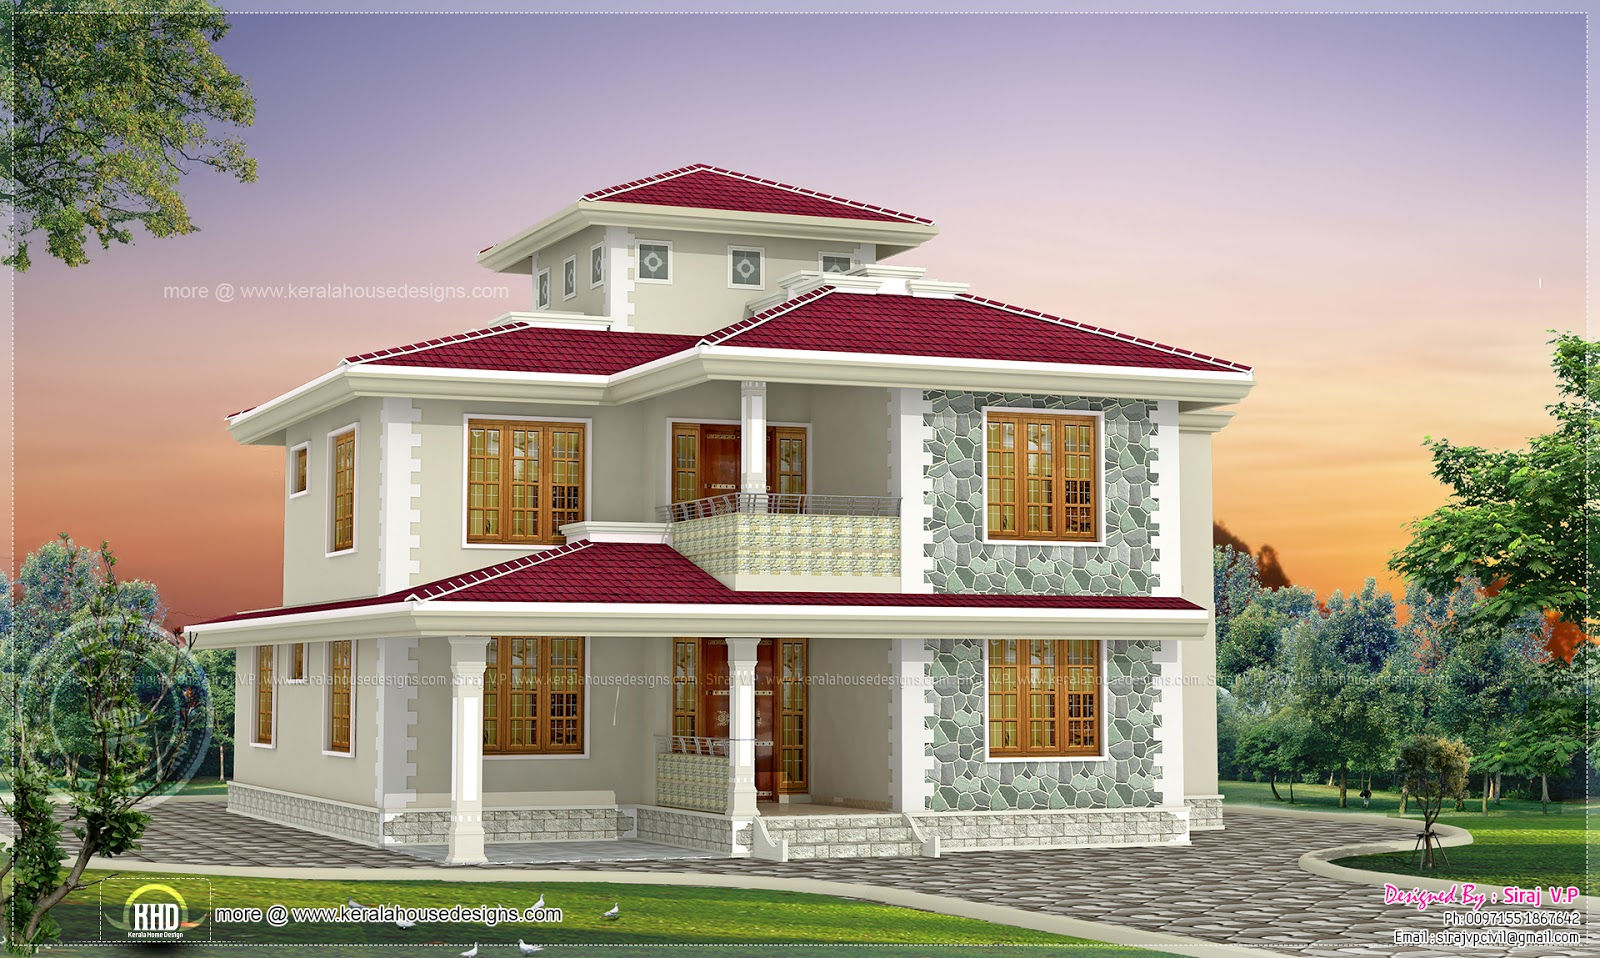 4 bhk kerala style home design kerala home design and Simple house designs indian style